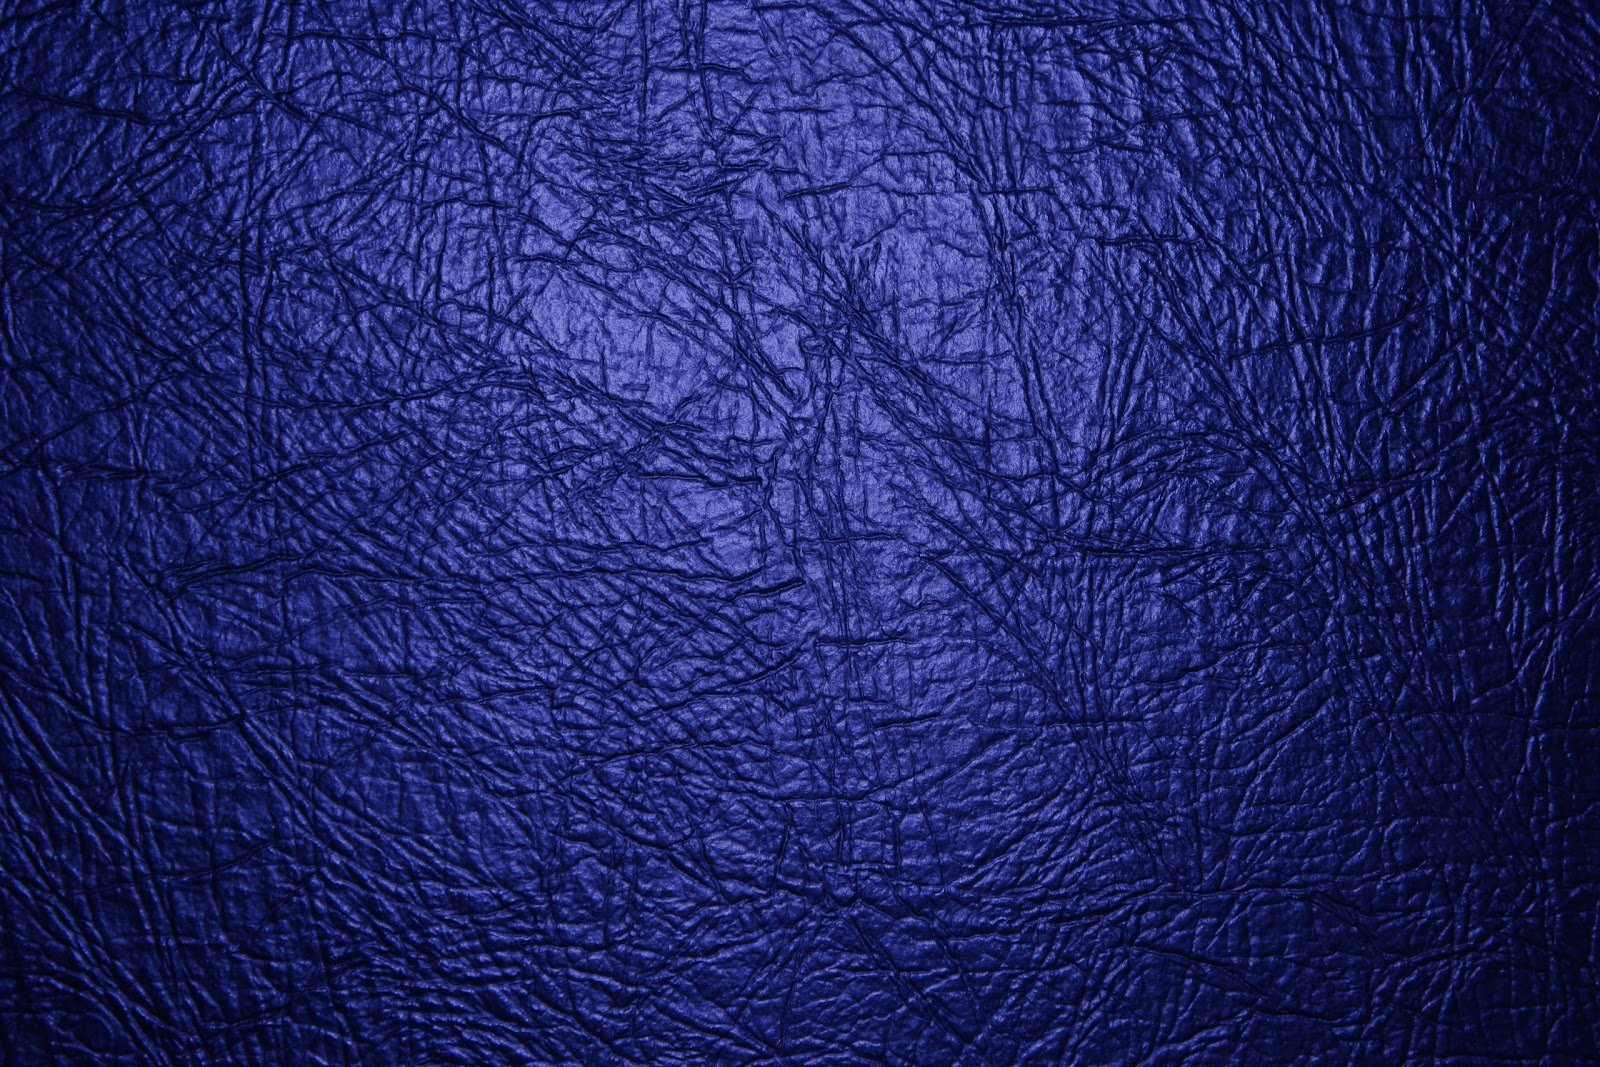 Blue Wallpaper Texture 1600x1067